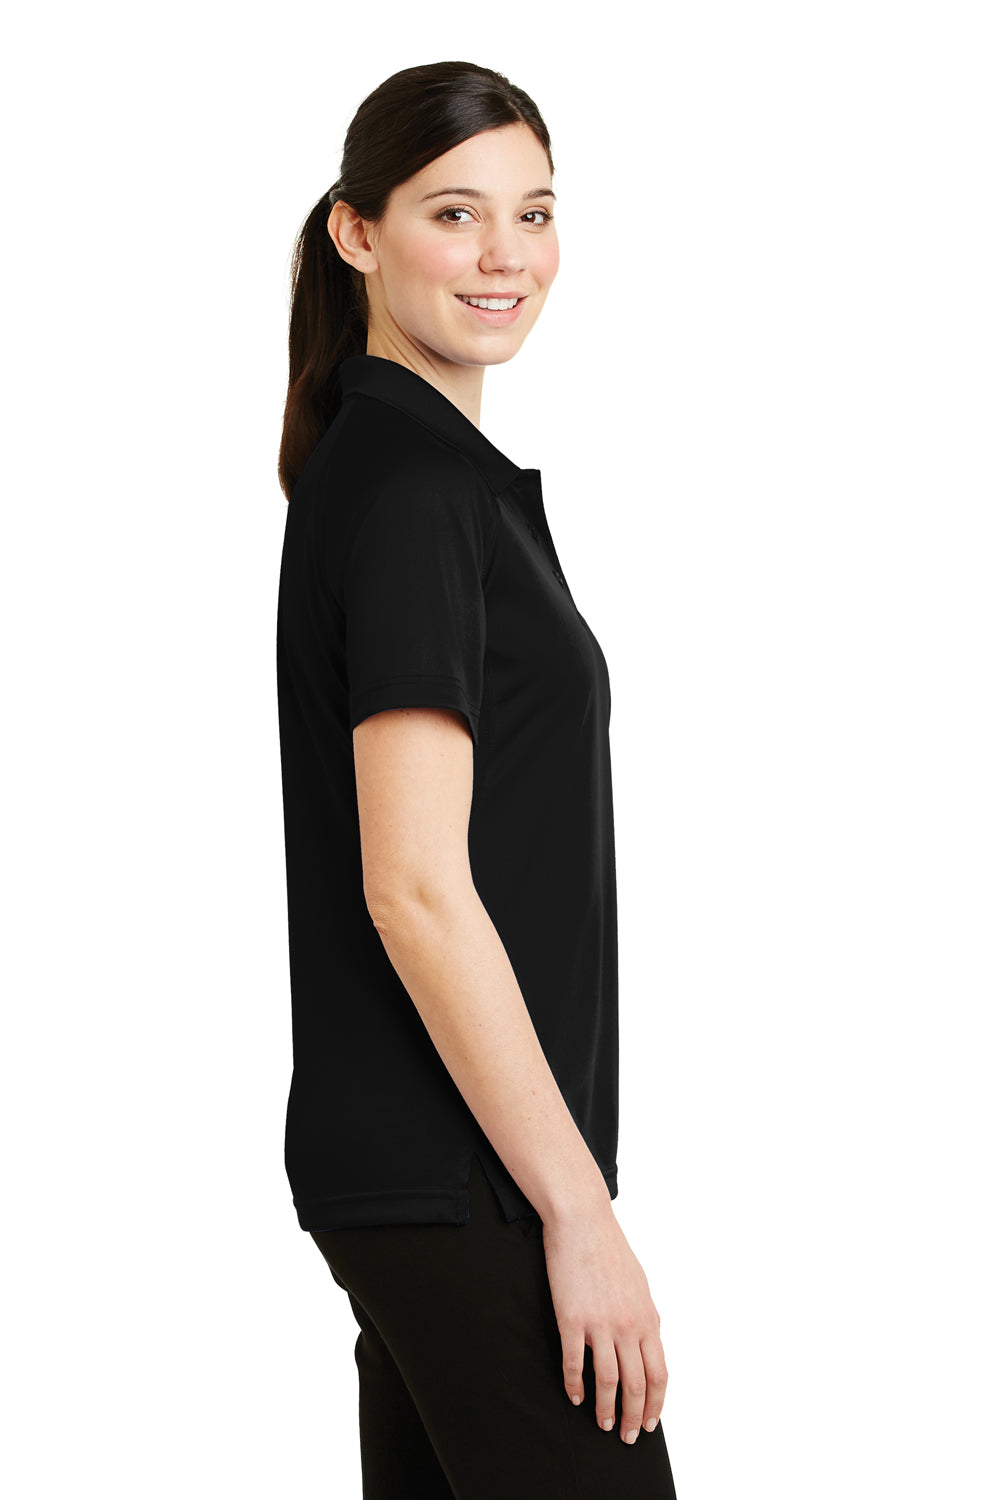 CornerStone CS411 Womens Select Tactical Moisture Wicking Short Sleeve Polo Shirt Black Side